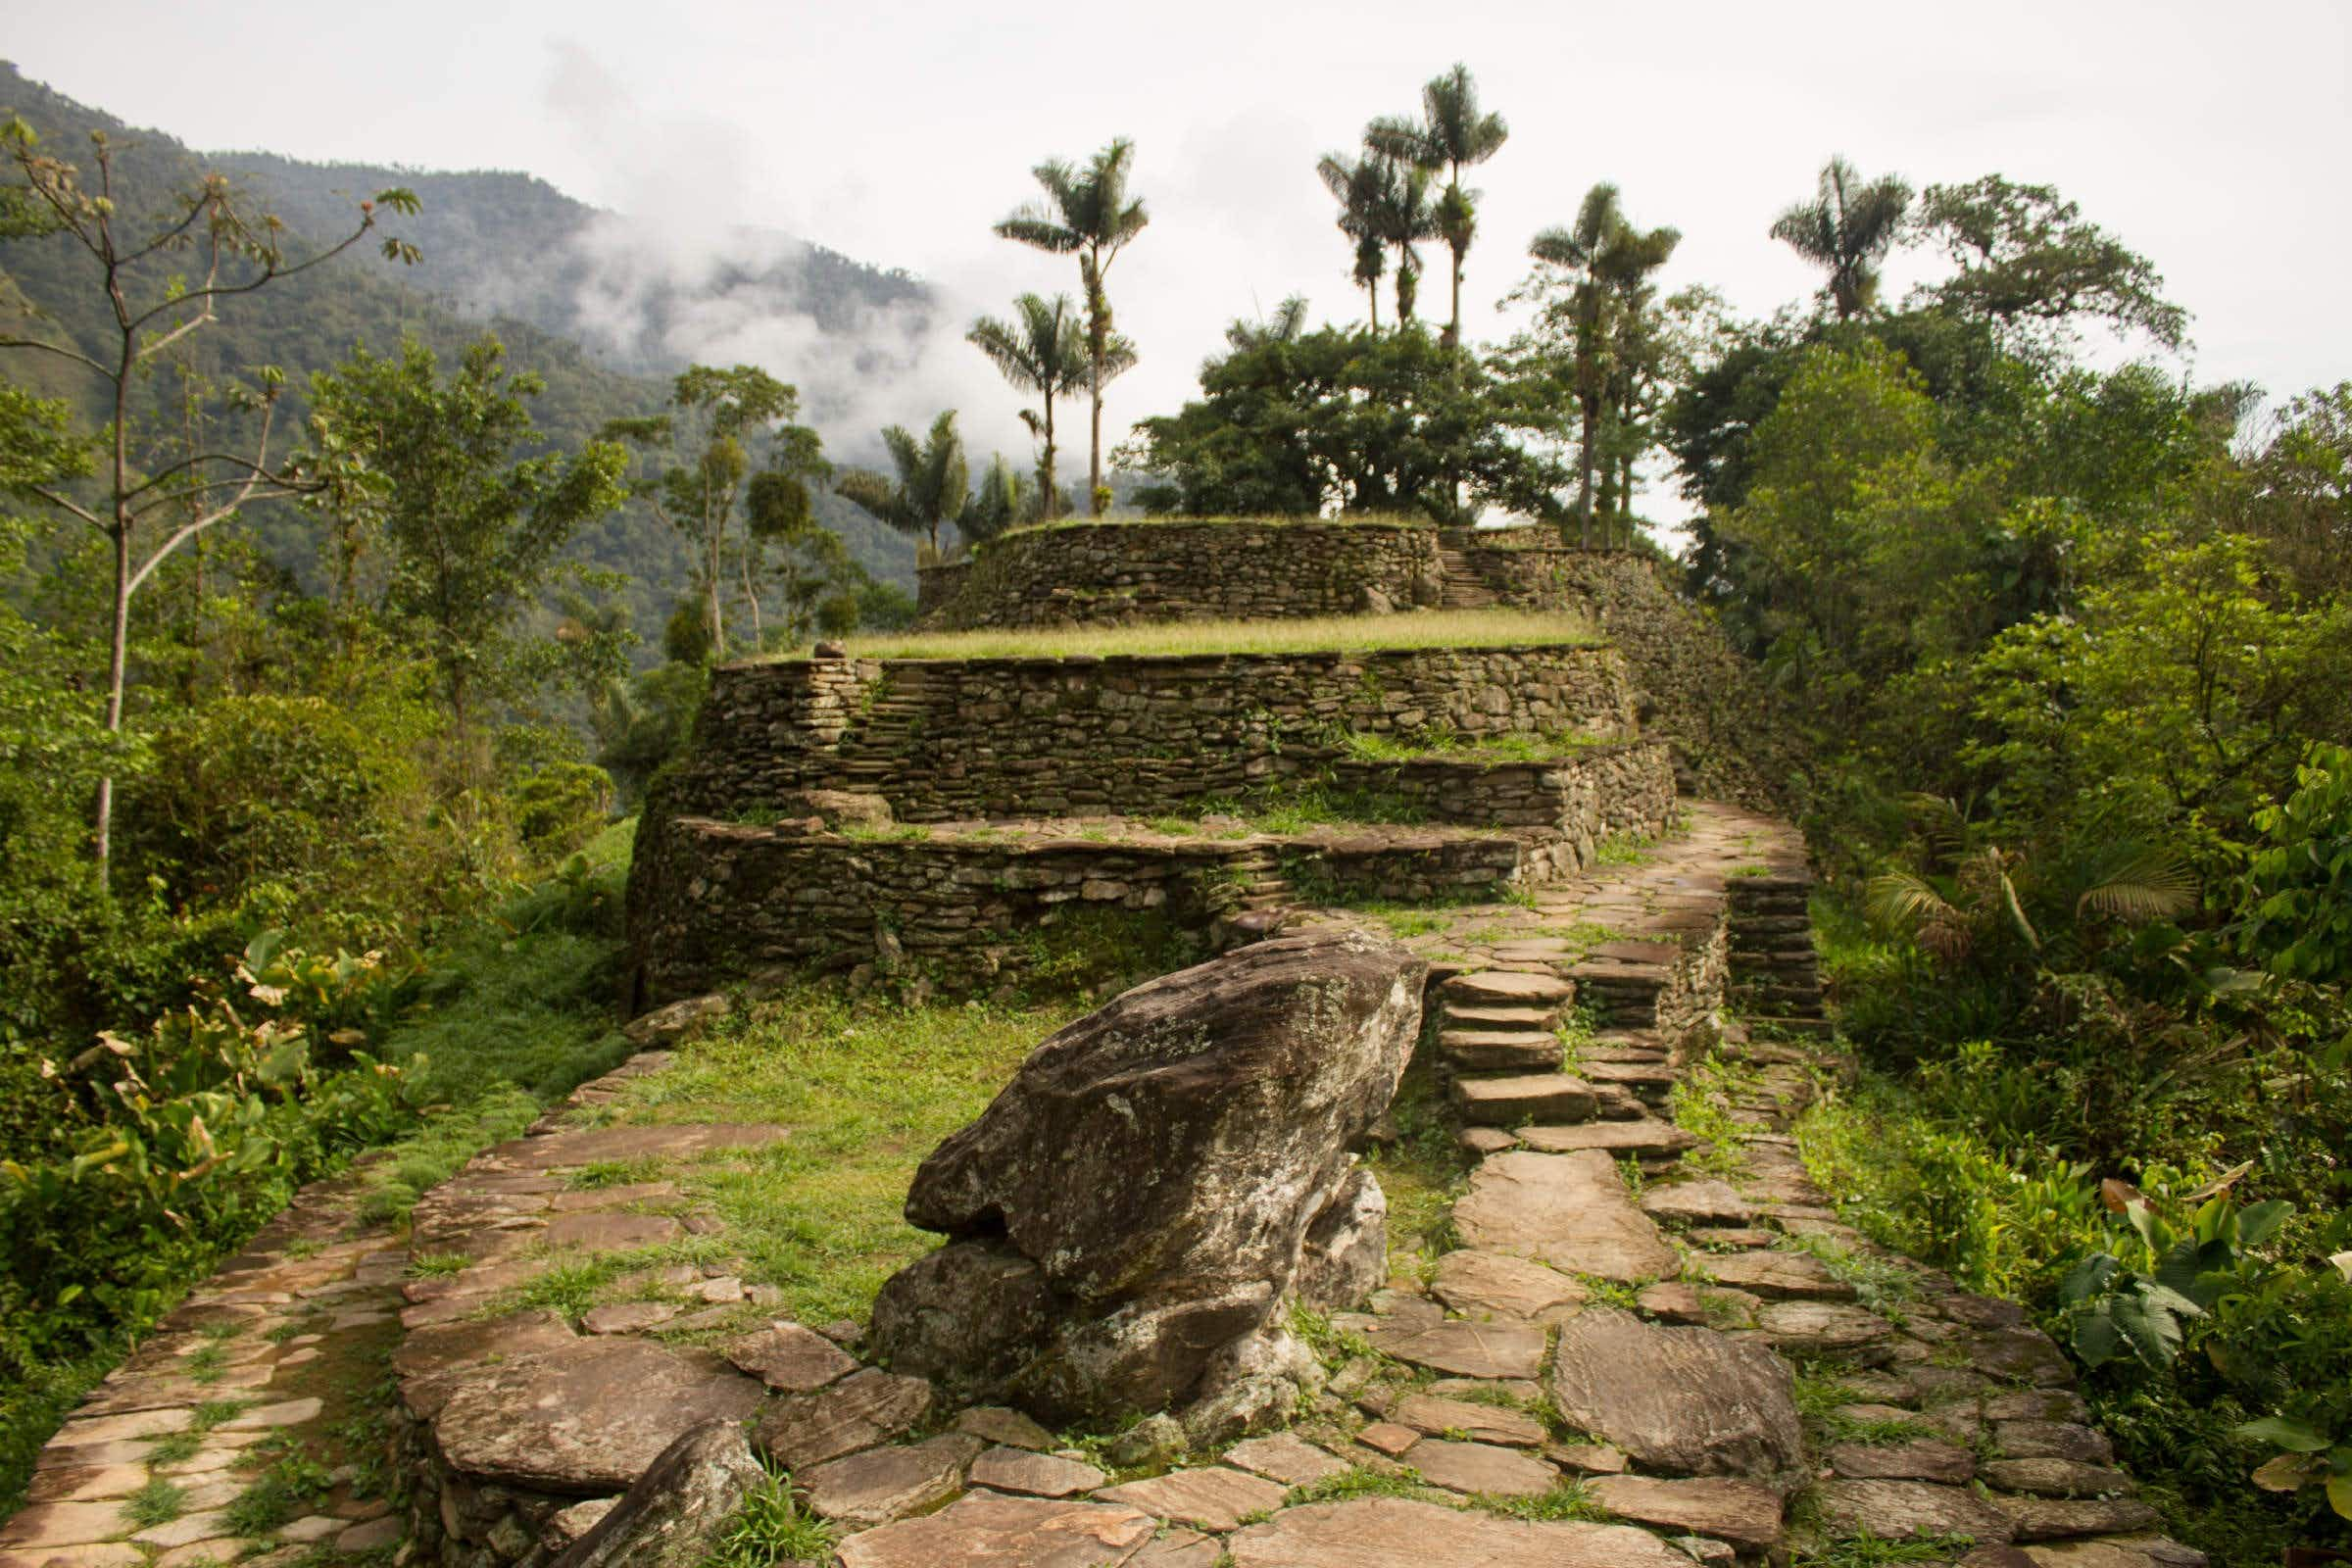 Trek an undiscovered route from Colombia's Lost City with the help of the local community